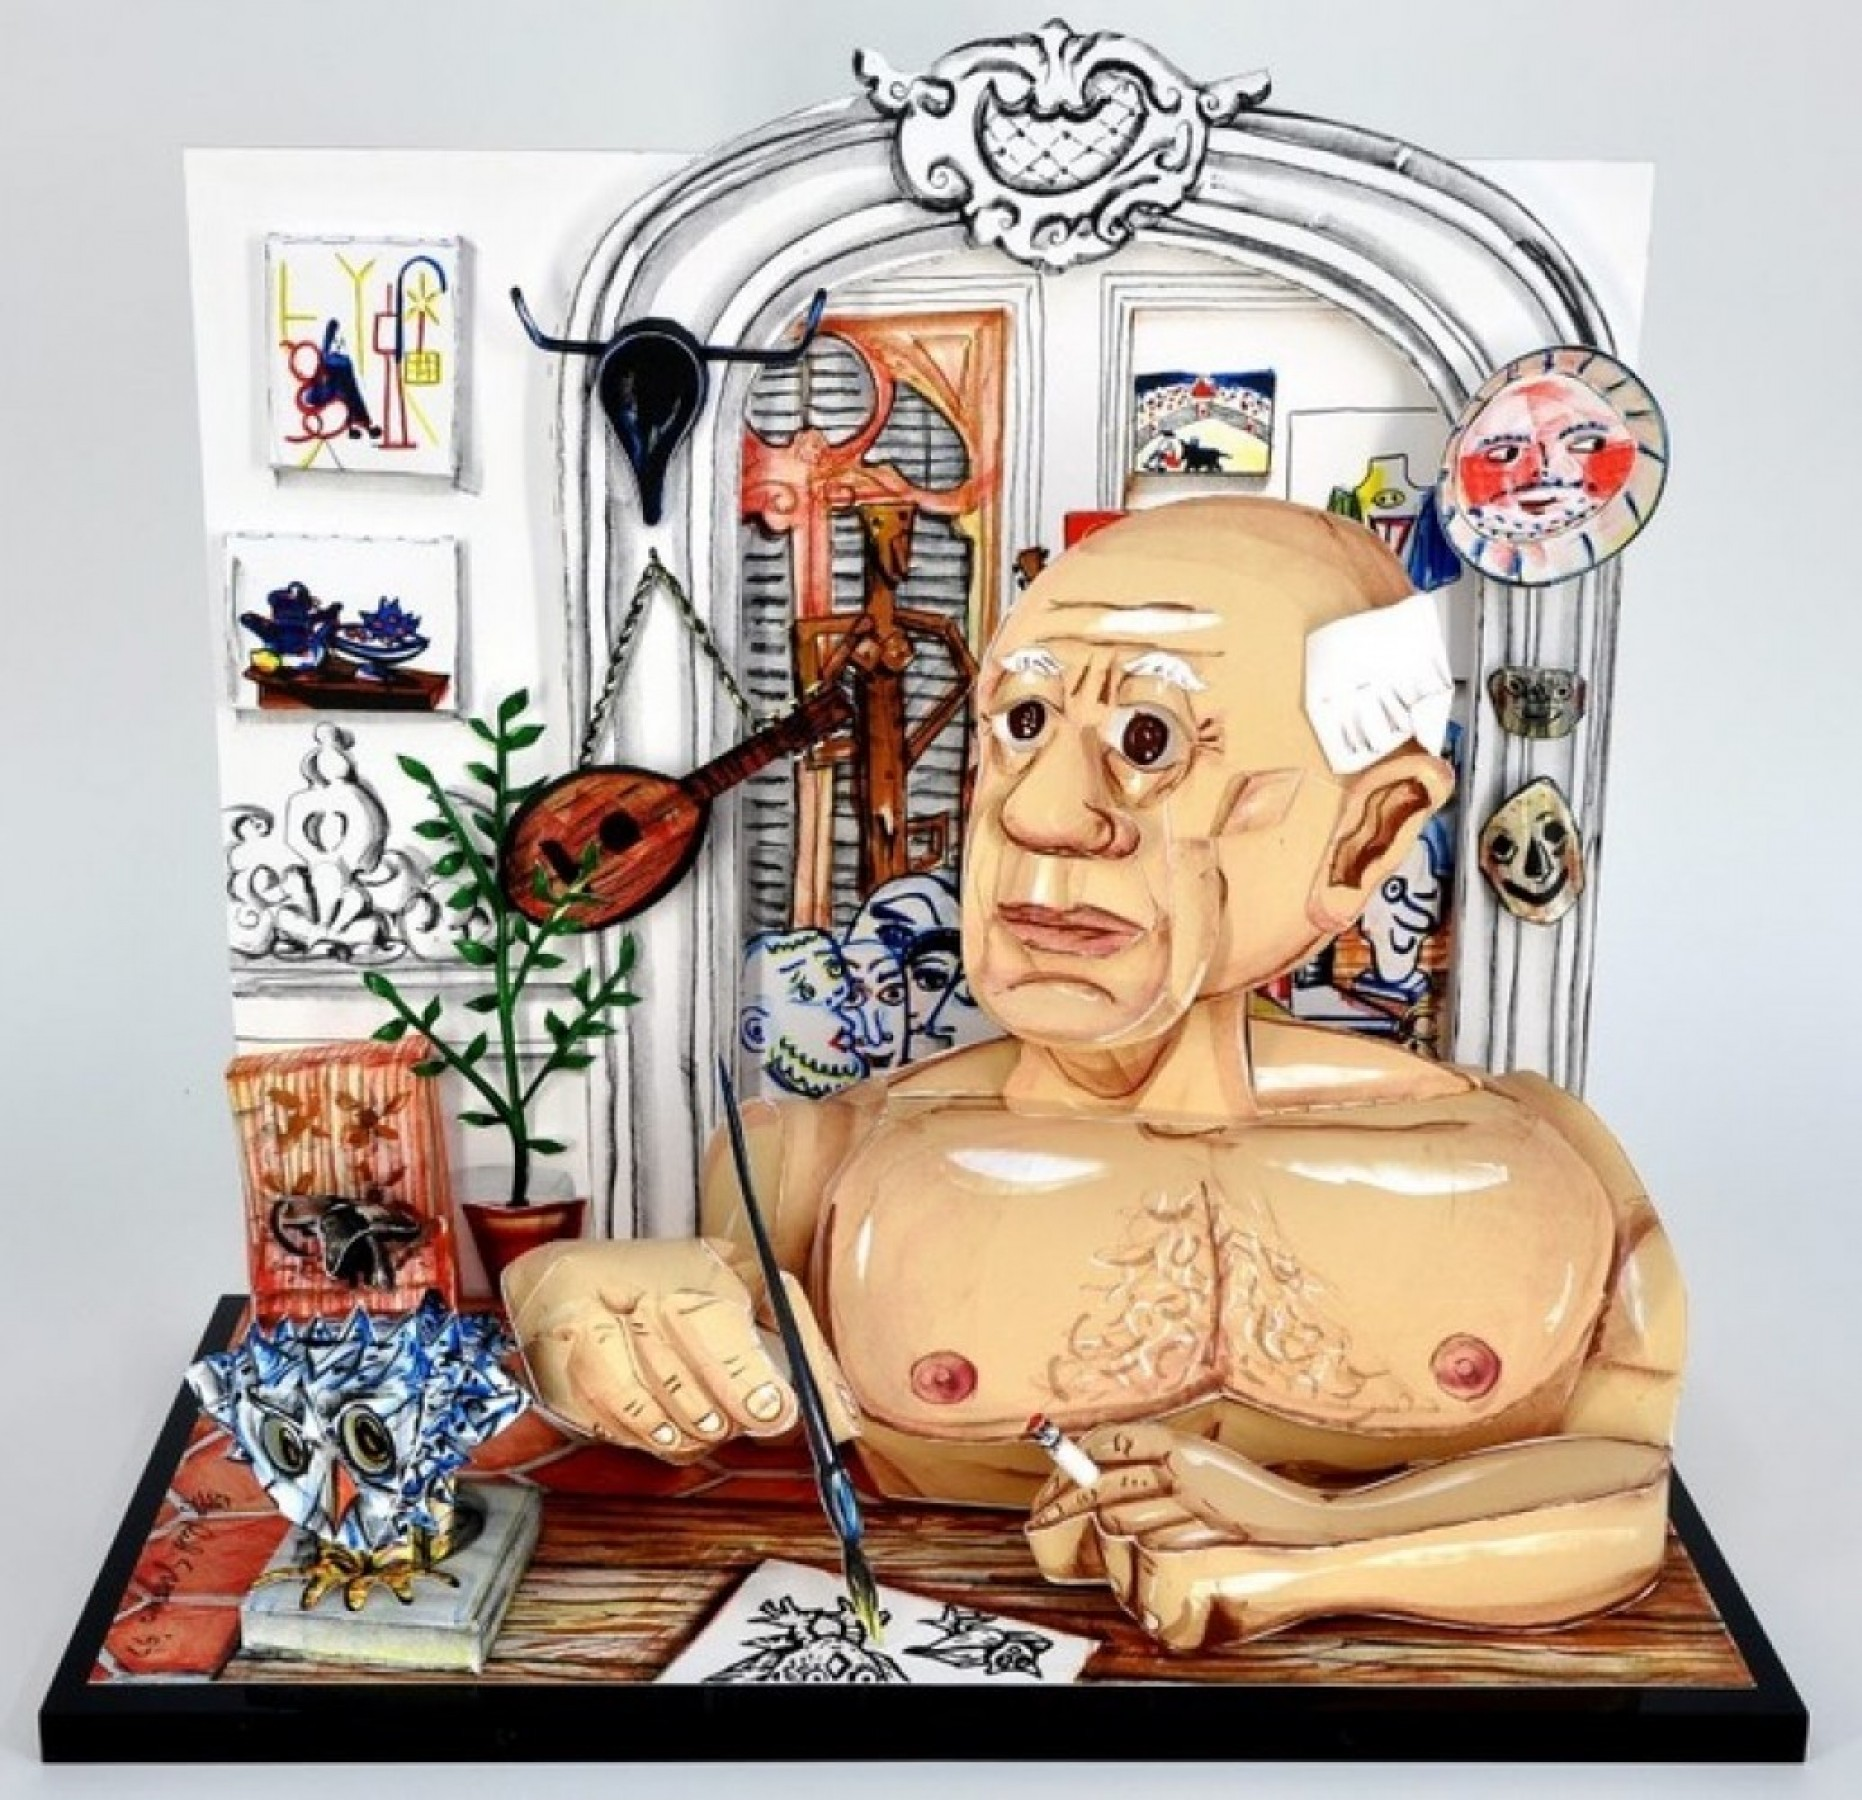 Picasso   3-D Lithographic Sculpture 1996